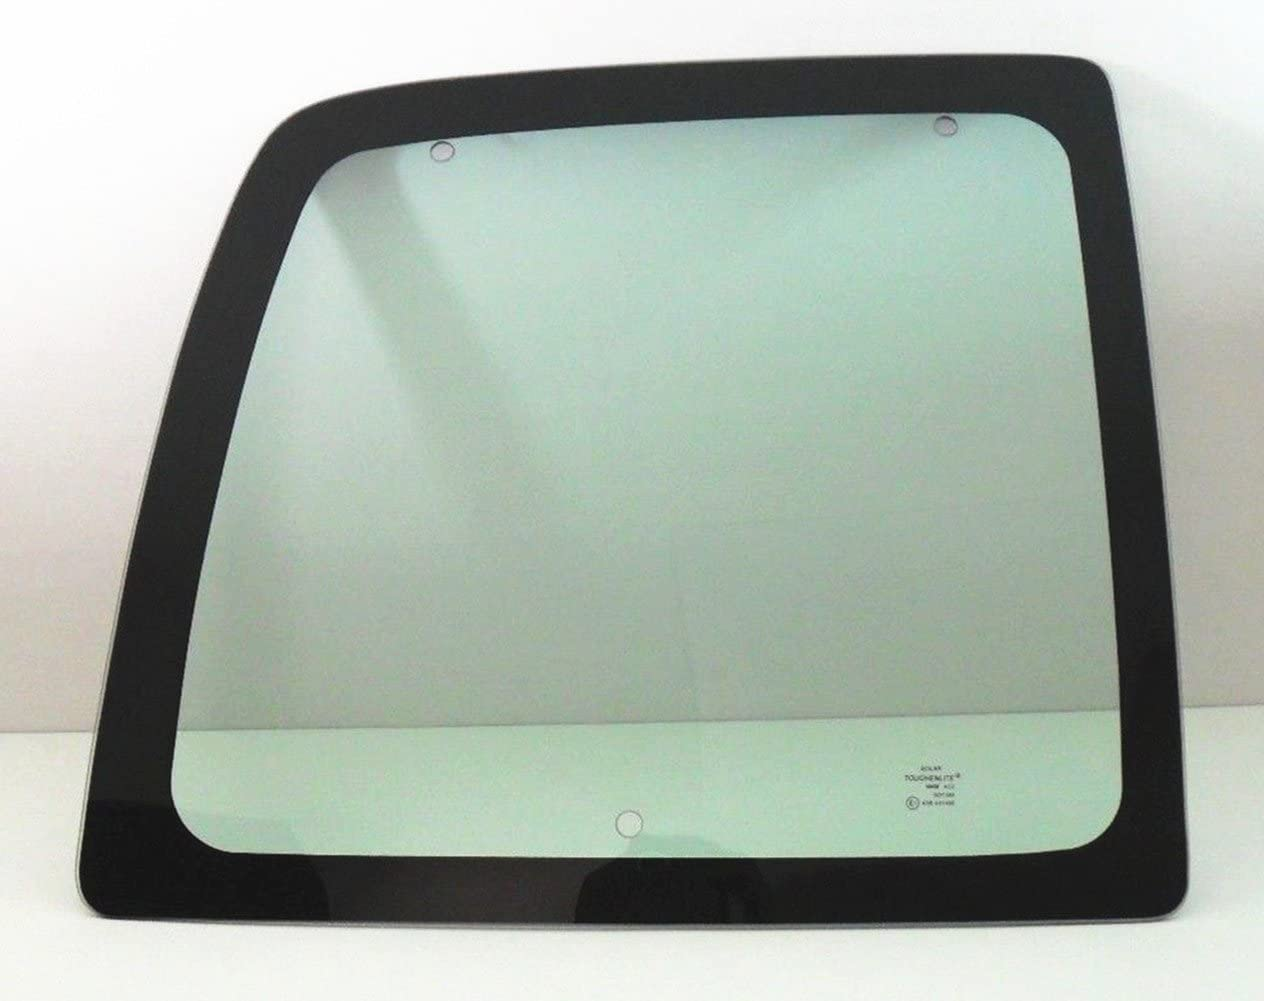 NAGD Movable Back Window Back Glass Driver Left Side Compatible with Chevrolet Express/GMC Savana 1996-2002 Models